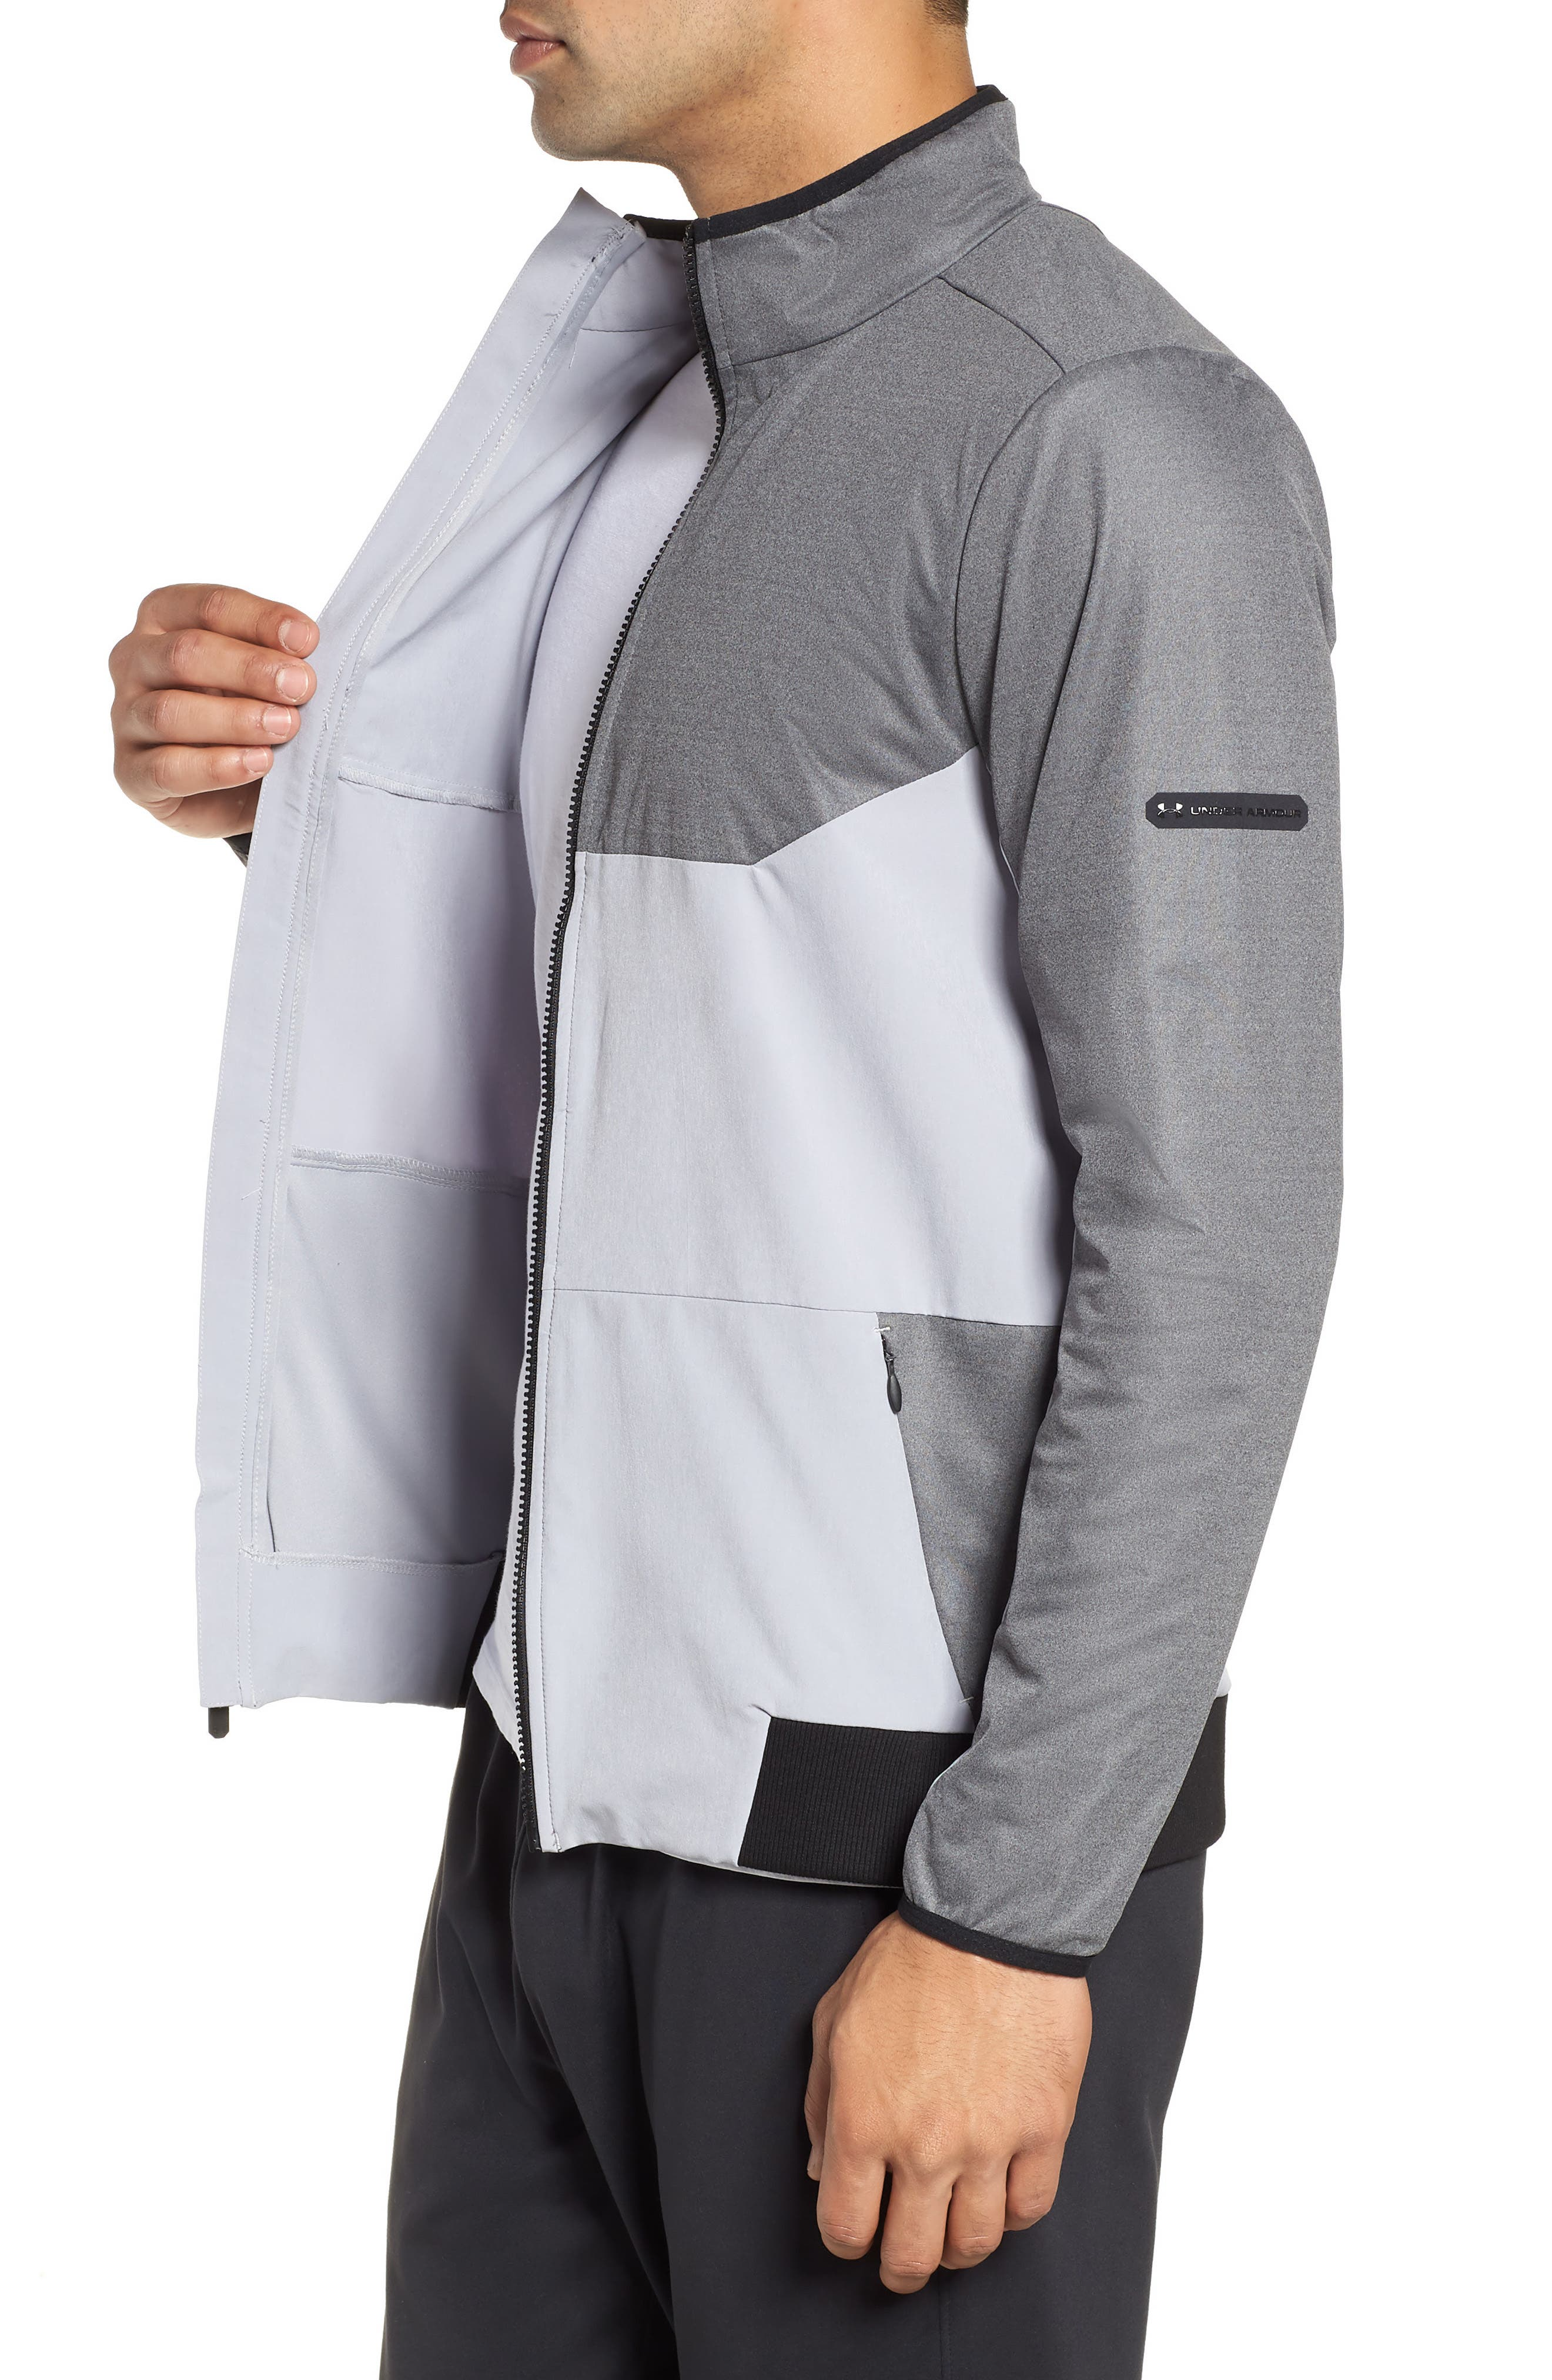 Gore<sup>®</sup> Windstopper<sup>®</sup> Full Zip Jacket,                             Alternate thumbnail 3, color,                             CHARCOAL / OVERCAST